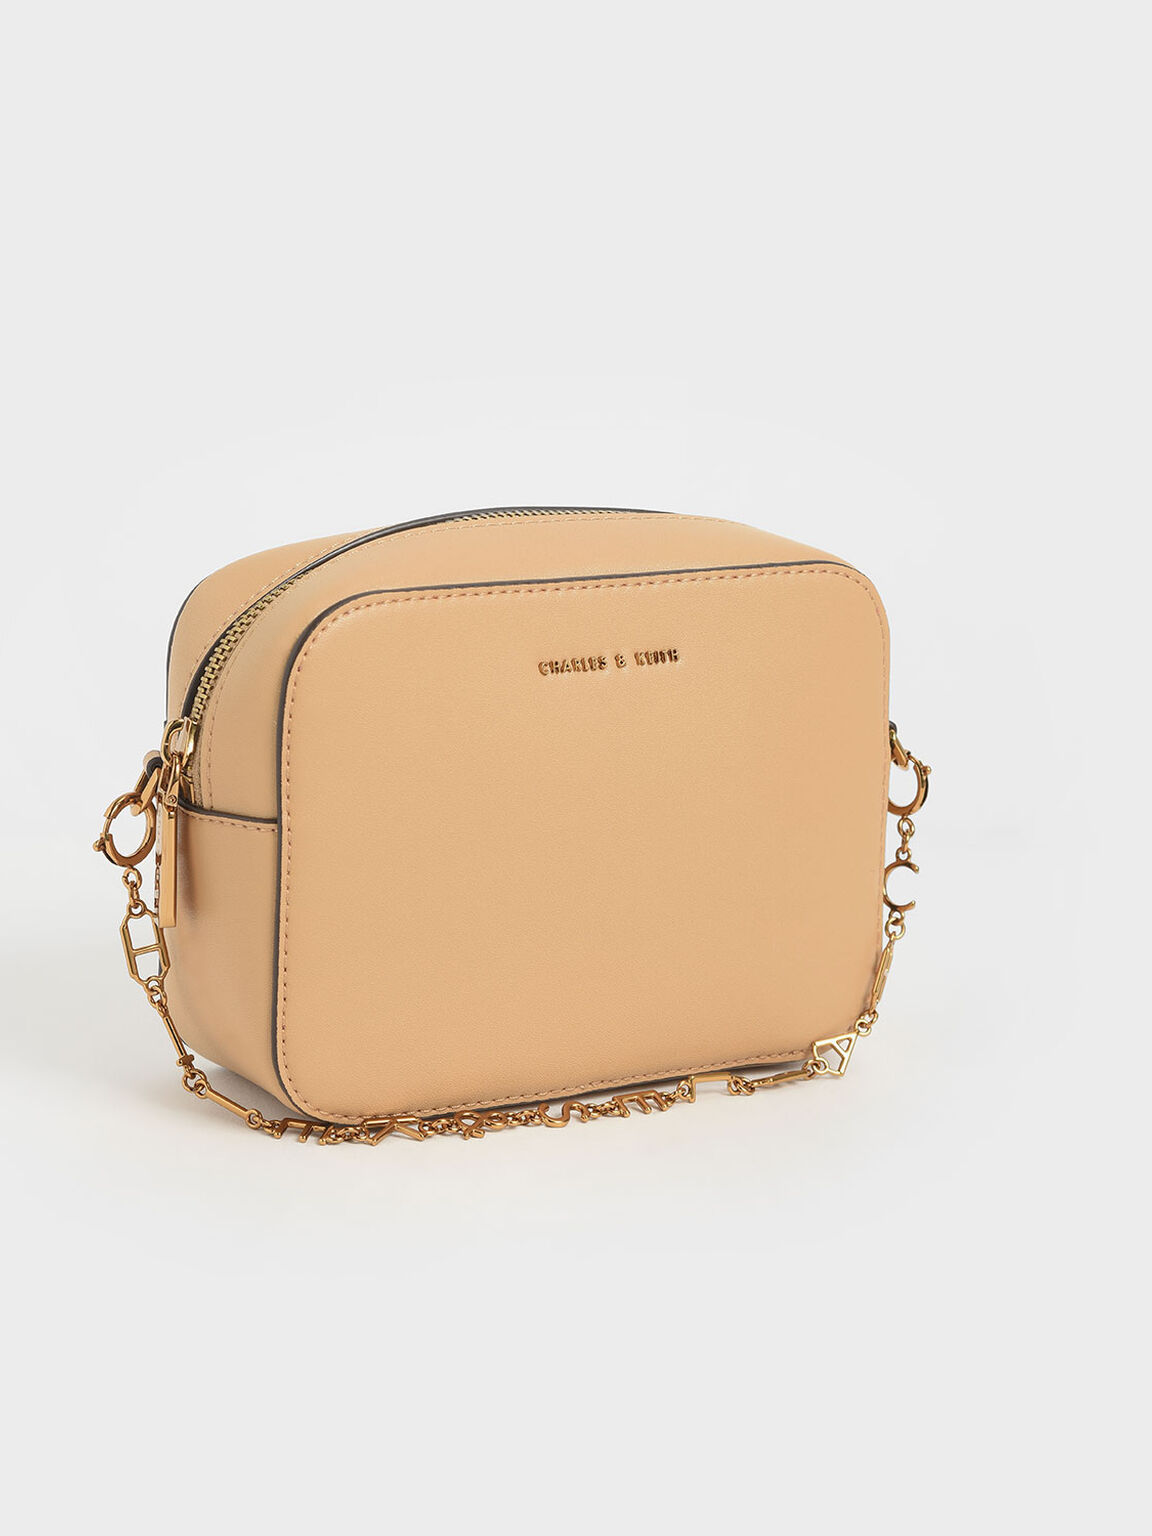 Chain-Link Rectangular Bag, Beige, hi-res